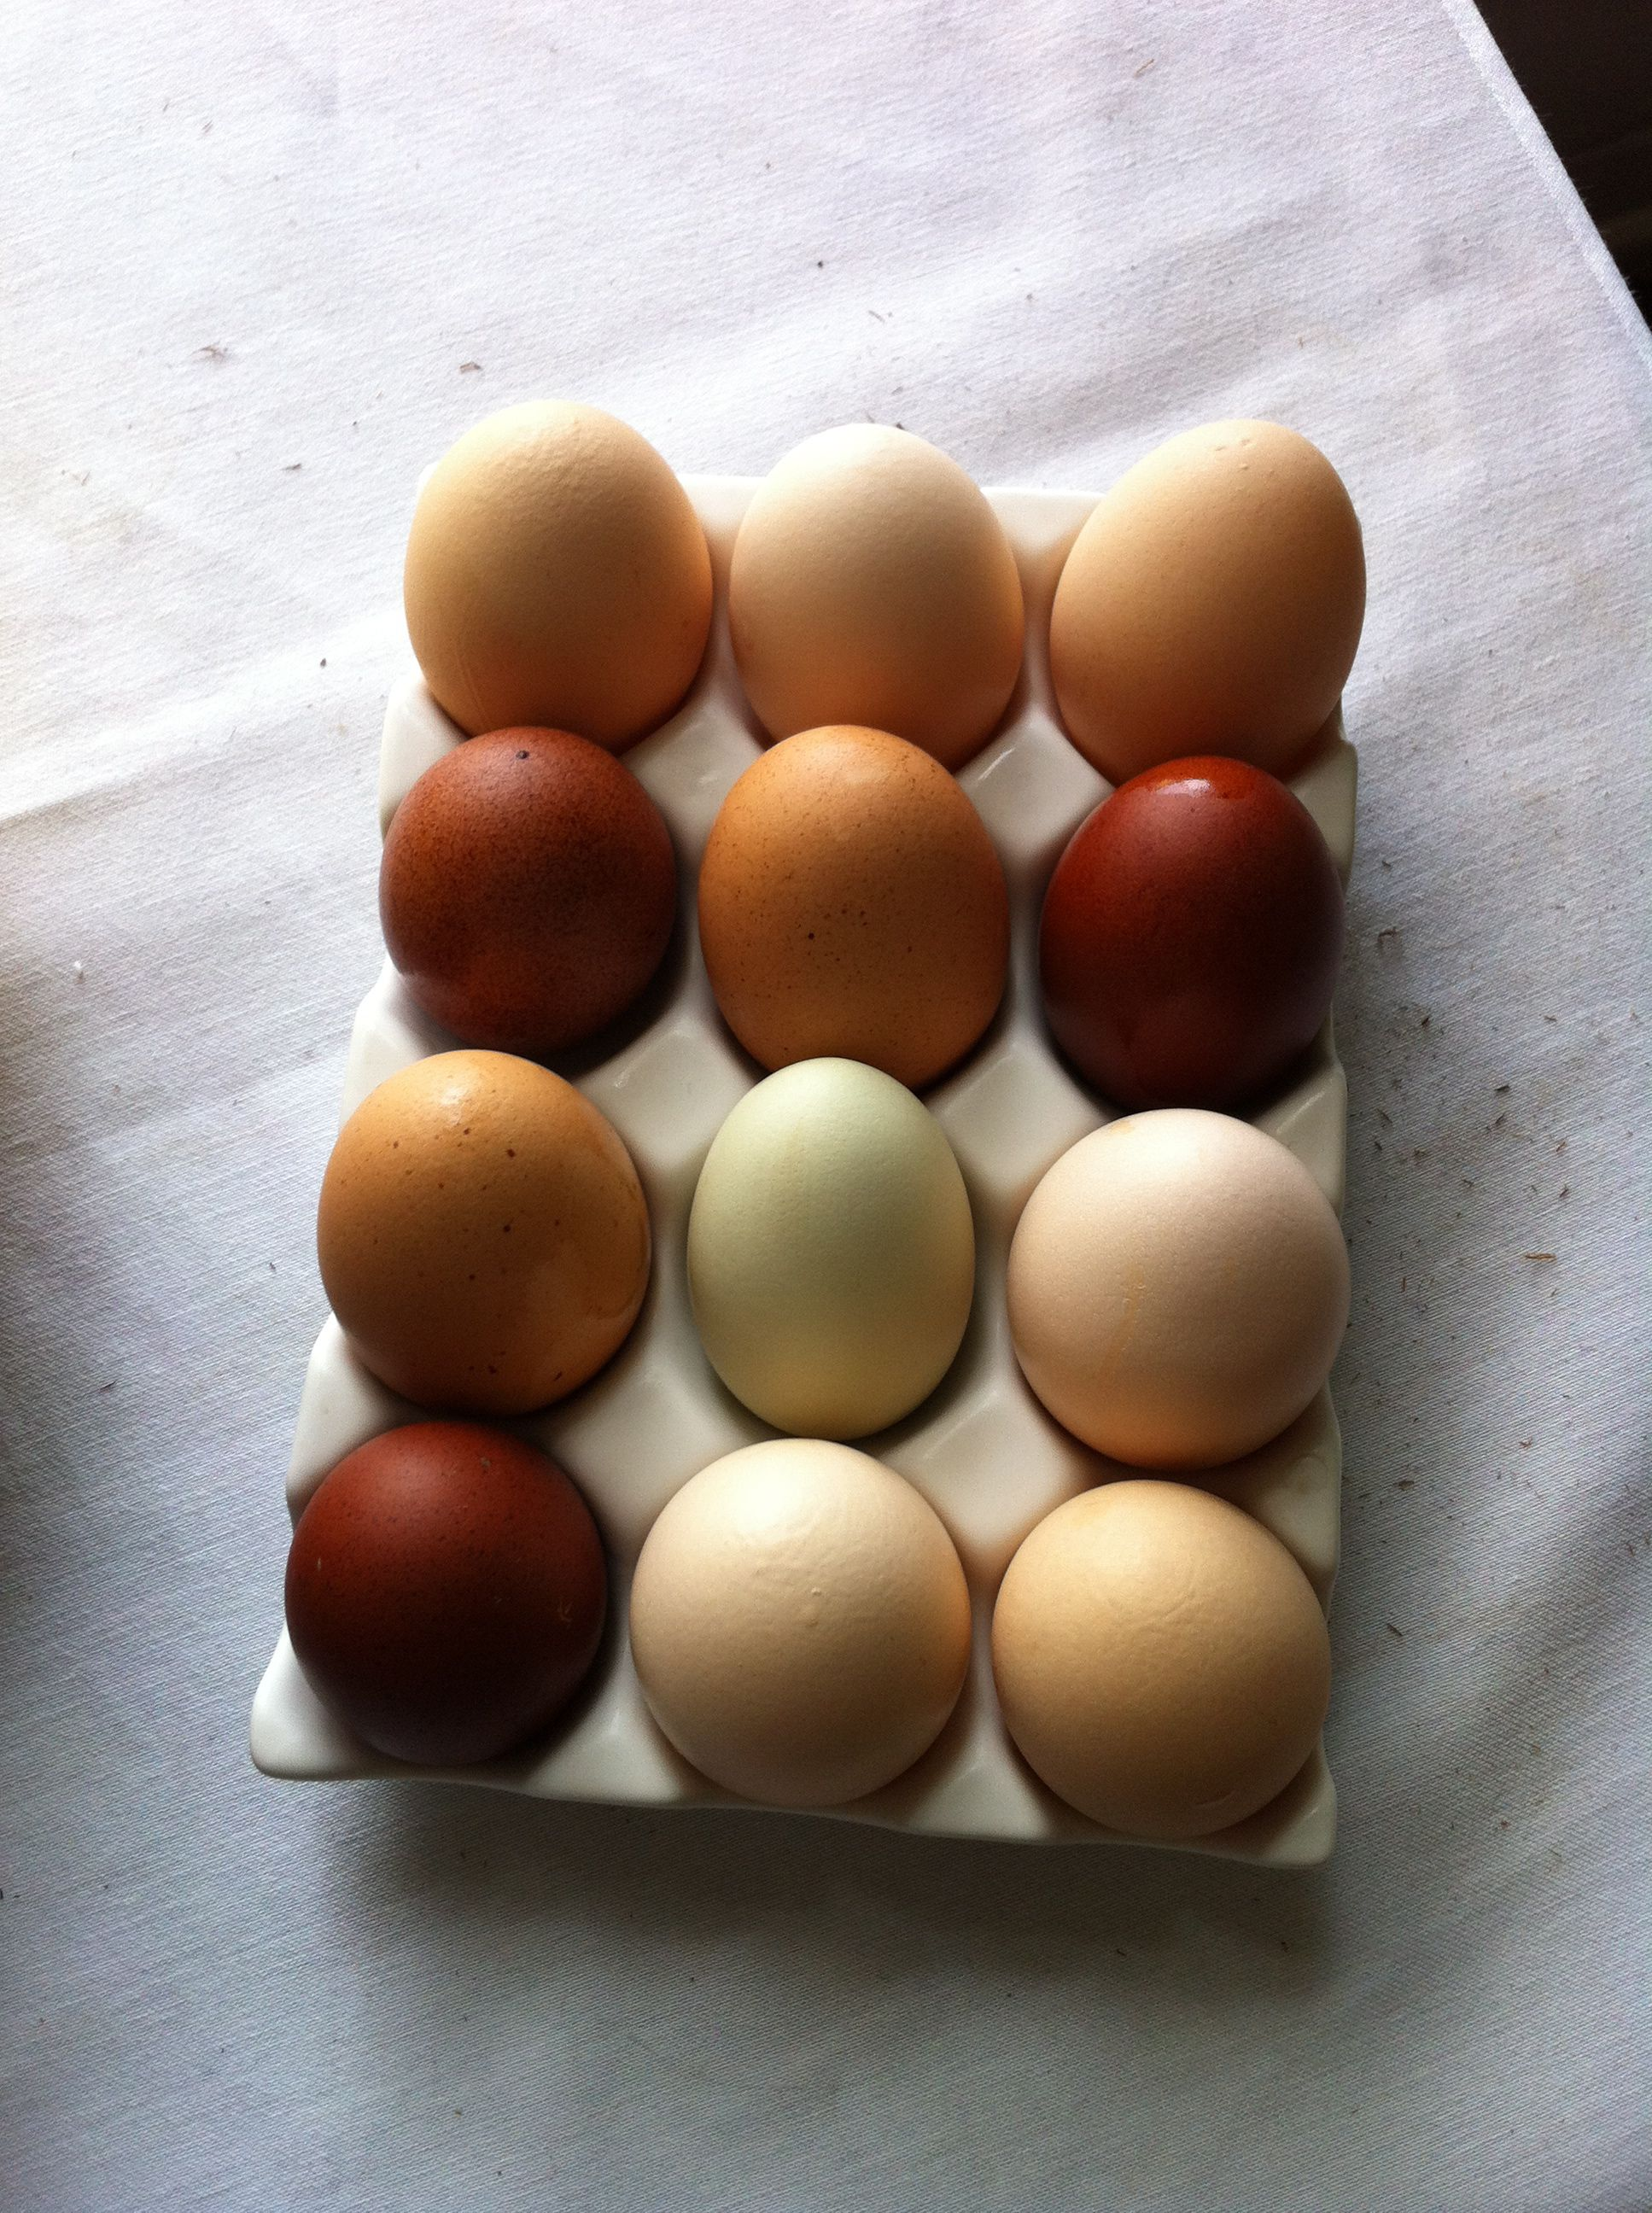 Eggs in Shades of Brown